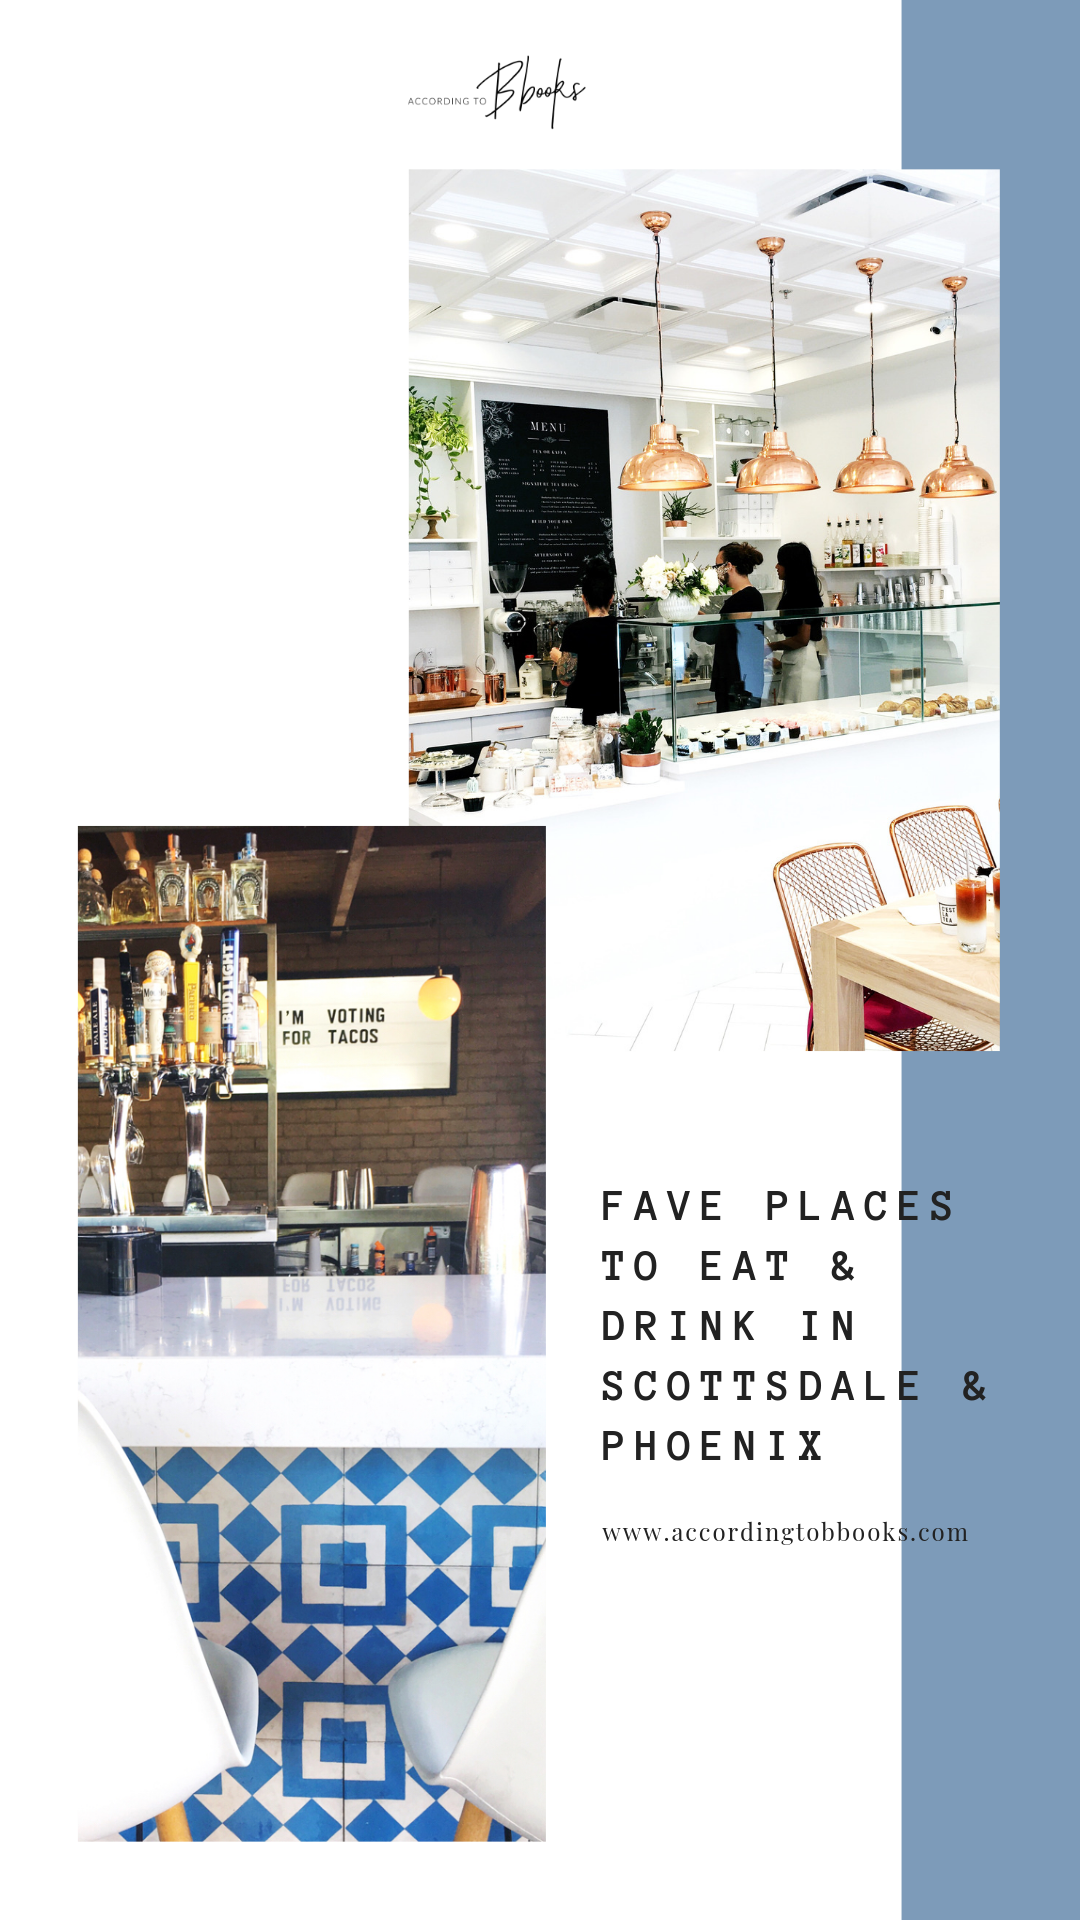 FAVE PLACES TO EAT & DRINK IN SCOTTSDALE & PHOENIX (1)